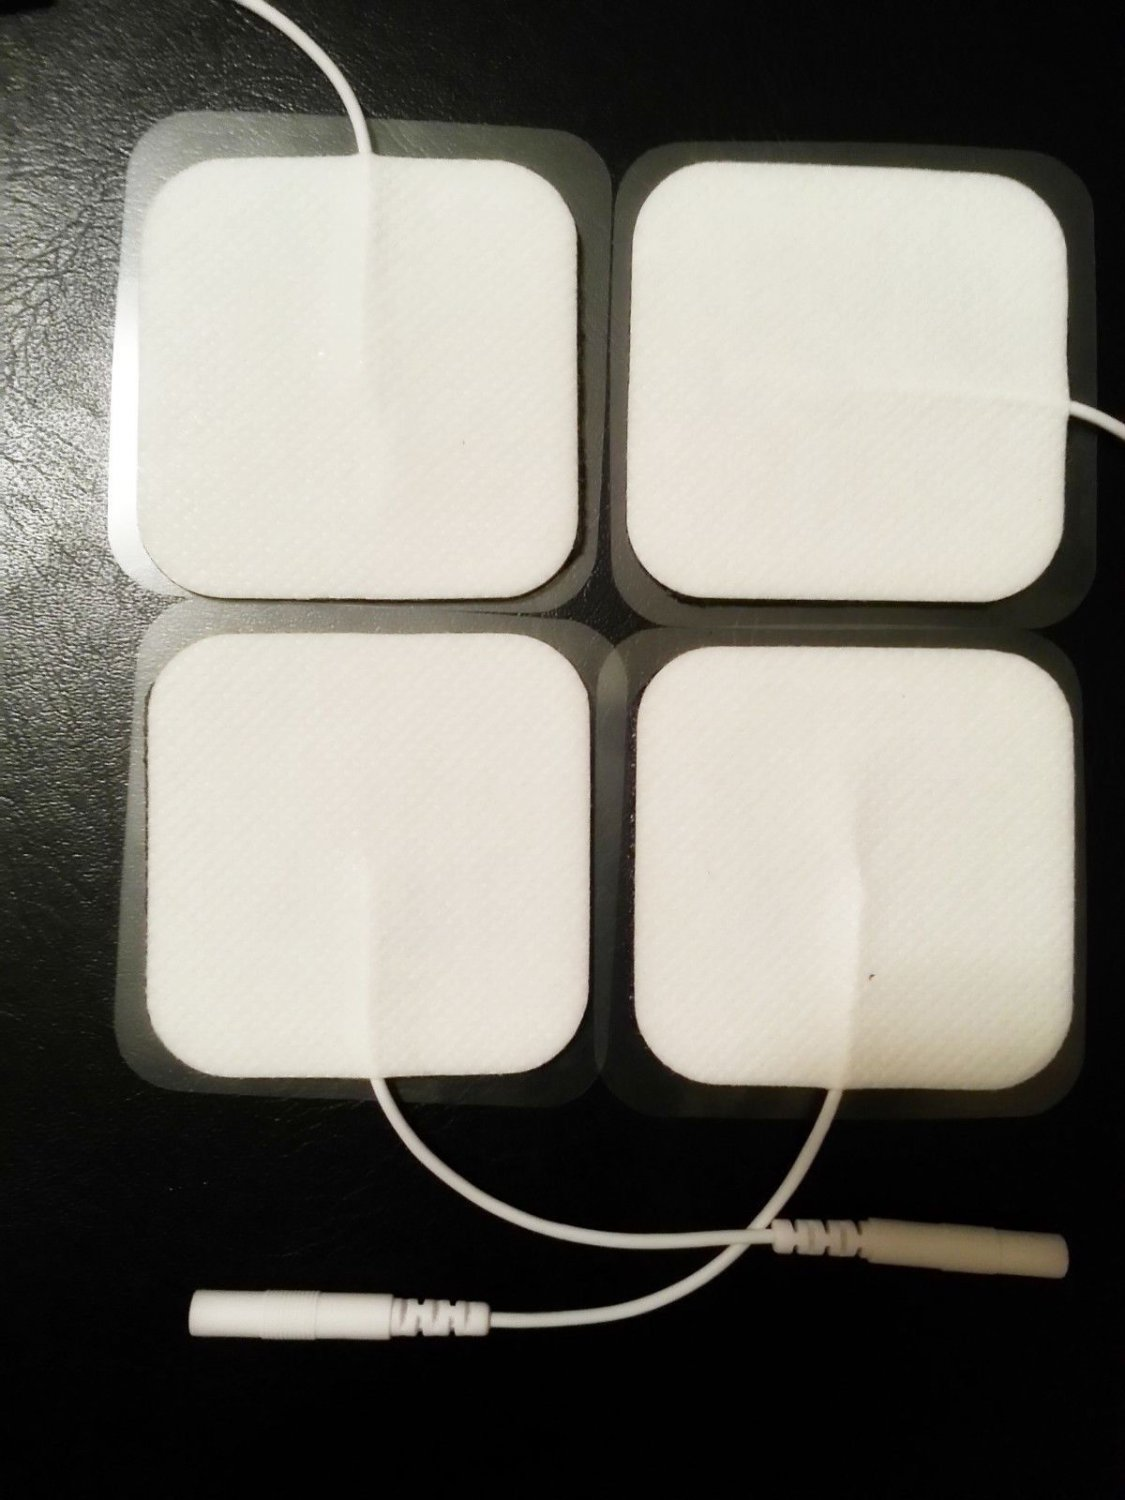 32 PC SQUARE REPLACEMENT ELECTRODE MASSAGE PADS-For MAGIC TOUCH PRO SERIES 104